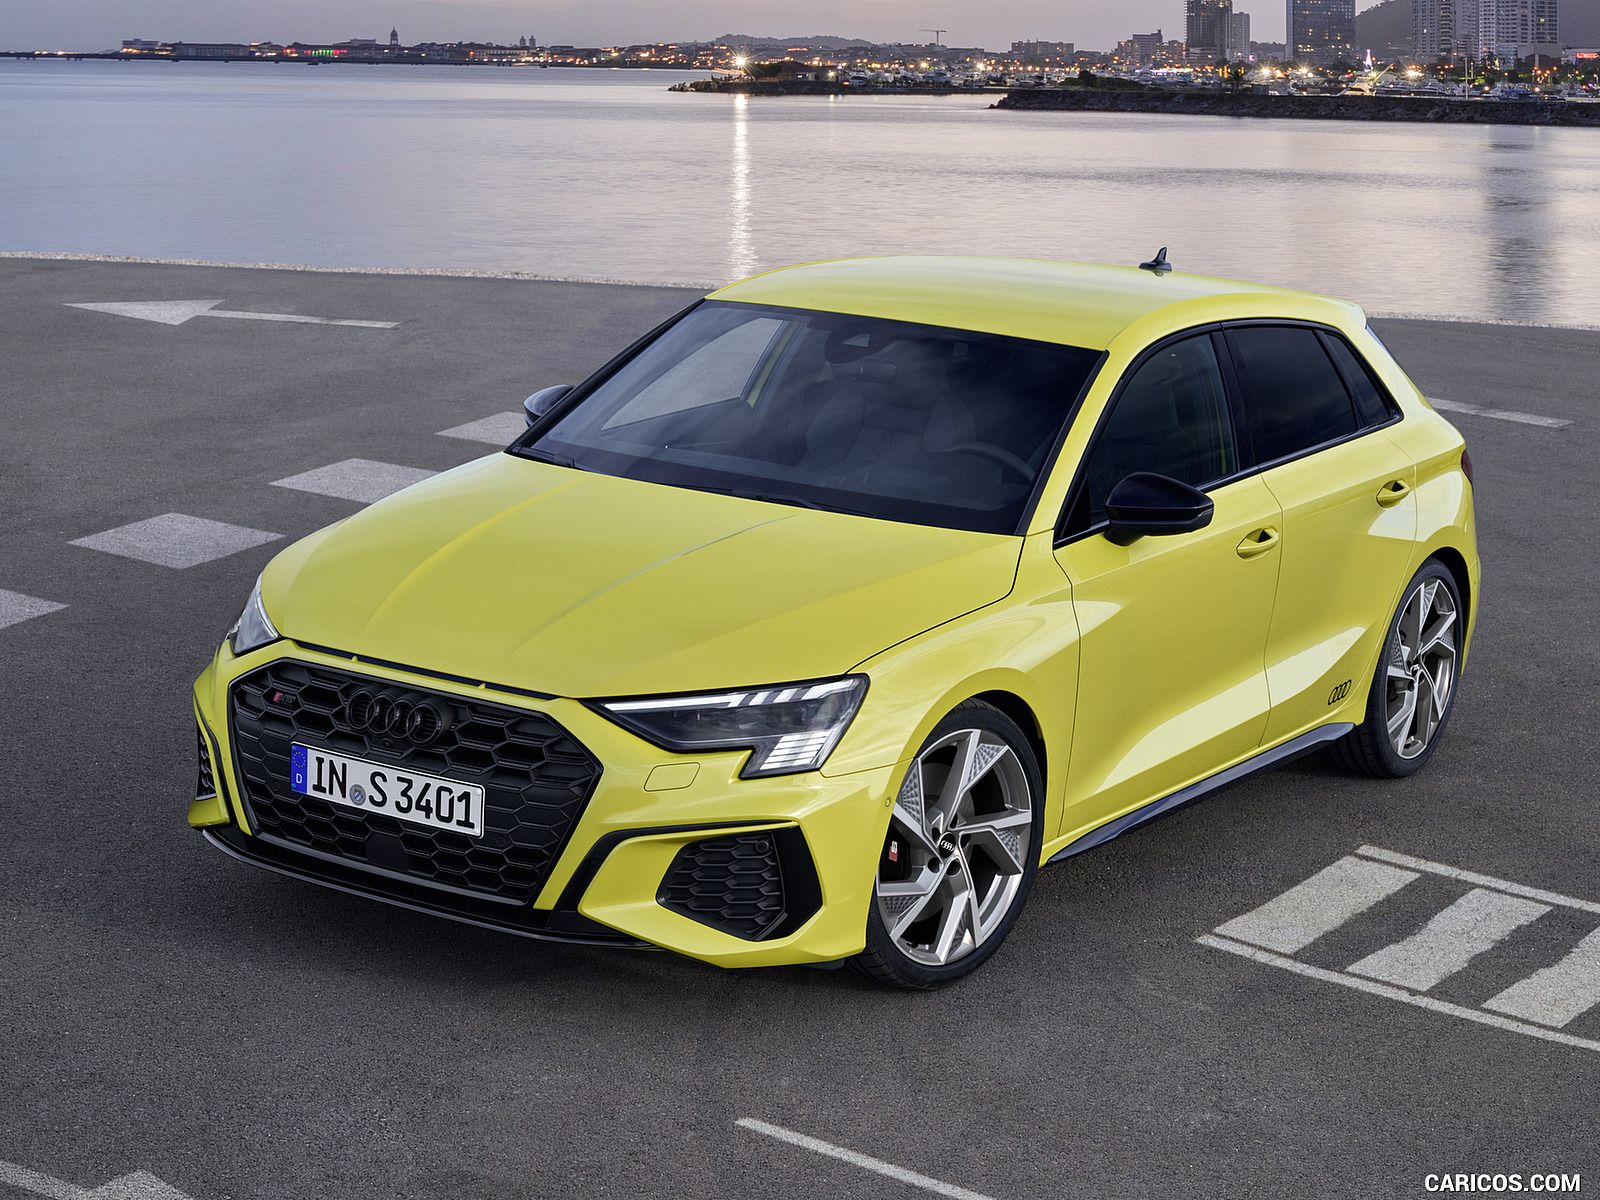 2021 Audi S3 Sportback Wallpaper in 2020 Audi, Sedan, S8